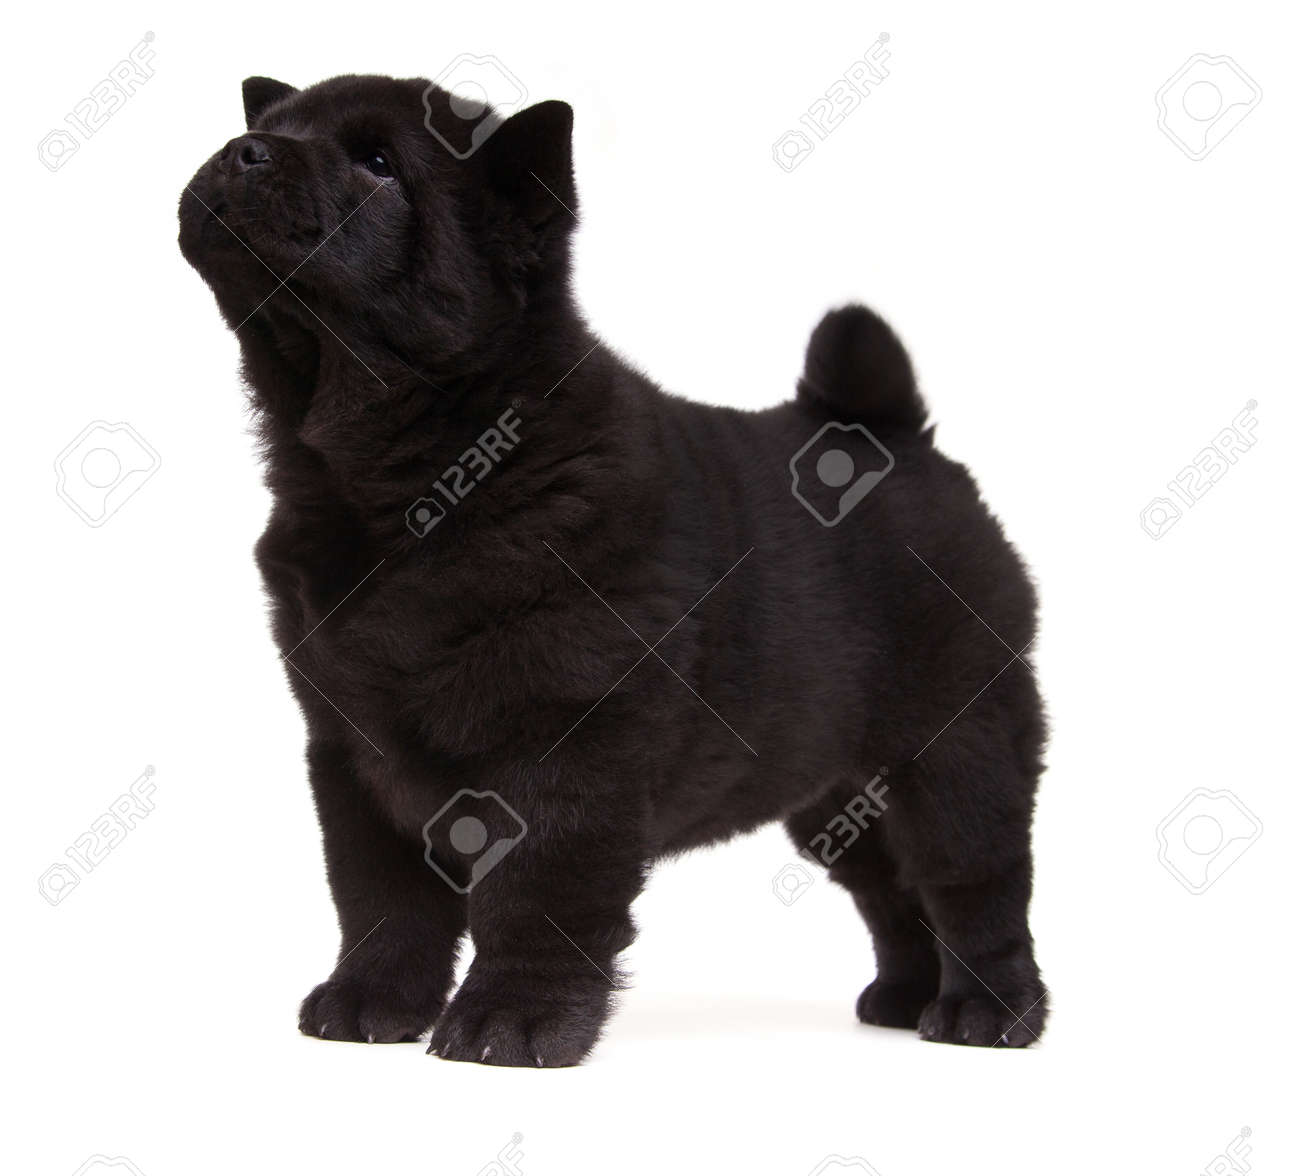 Fluffy Black Chow Chow Puppy Isolated Over White Background Stock